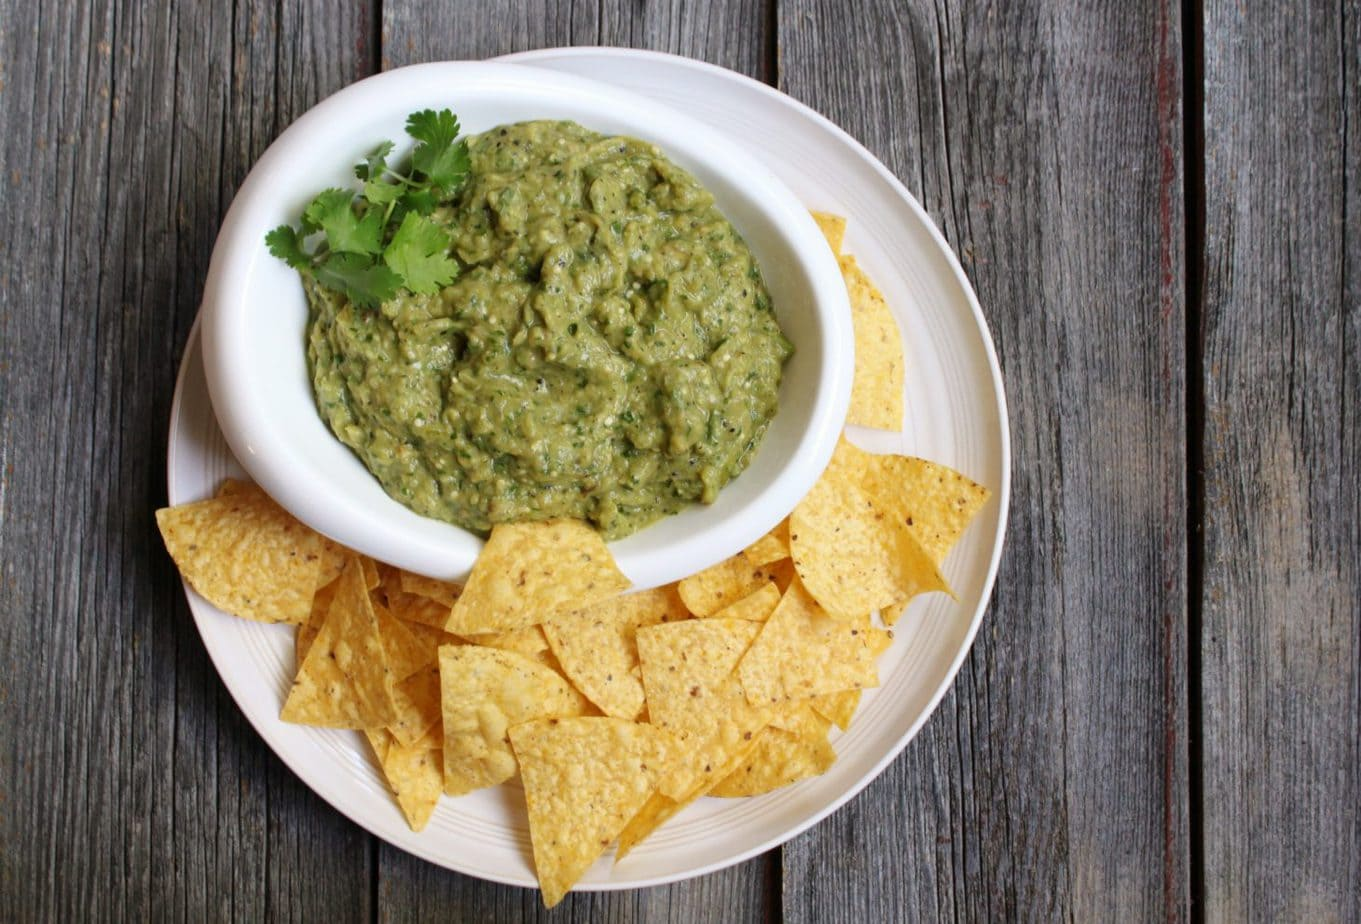 A Bowl of chunky green dip and some chips on the side